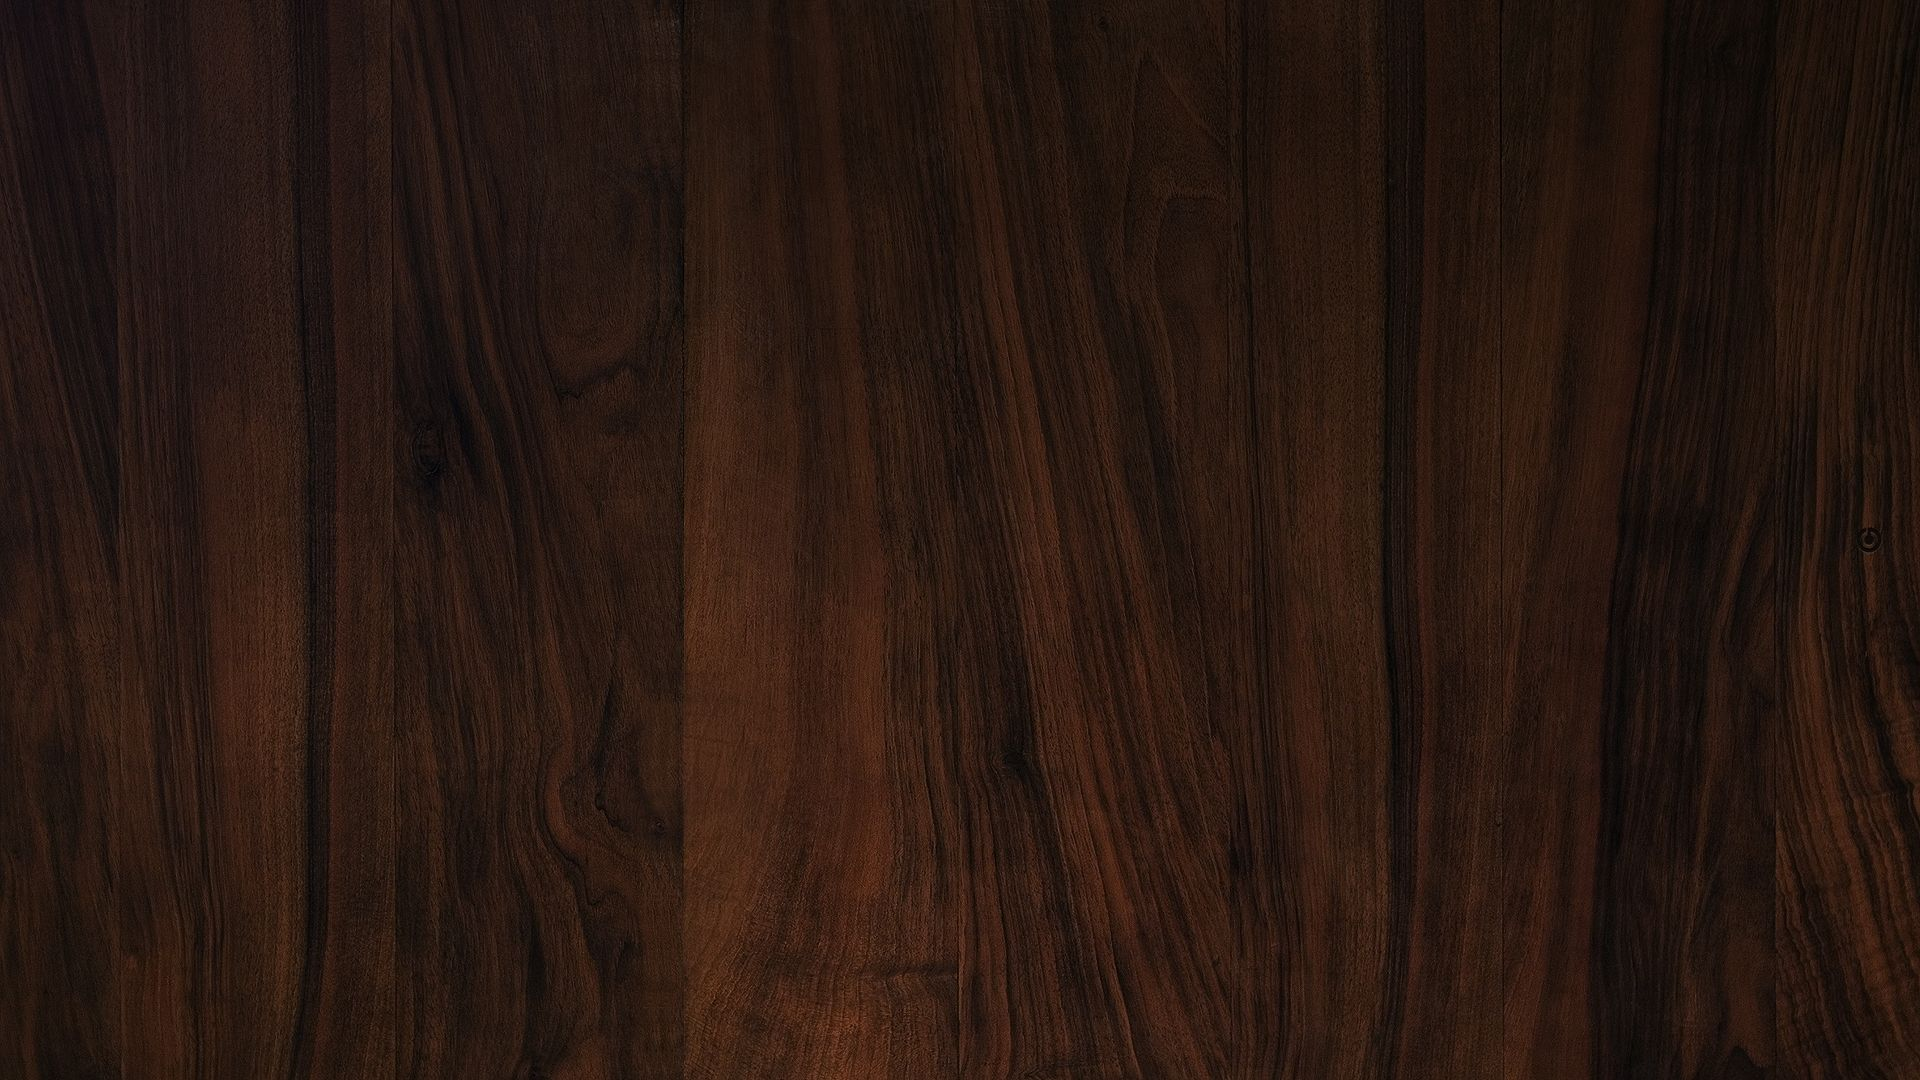 Wood Wallpapers High Resolution On Wallpaper 1080p HD boardd 1920x1080